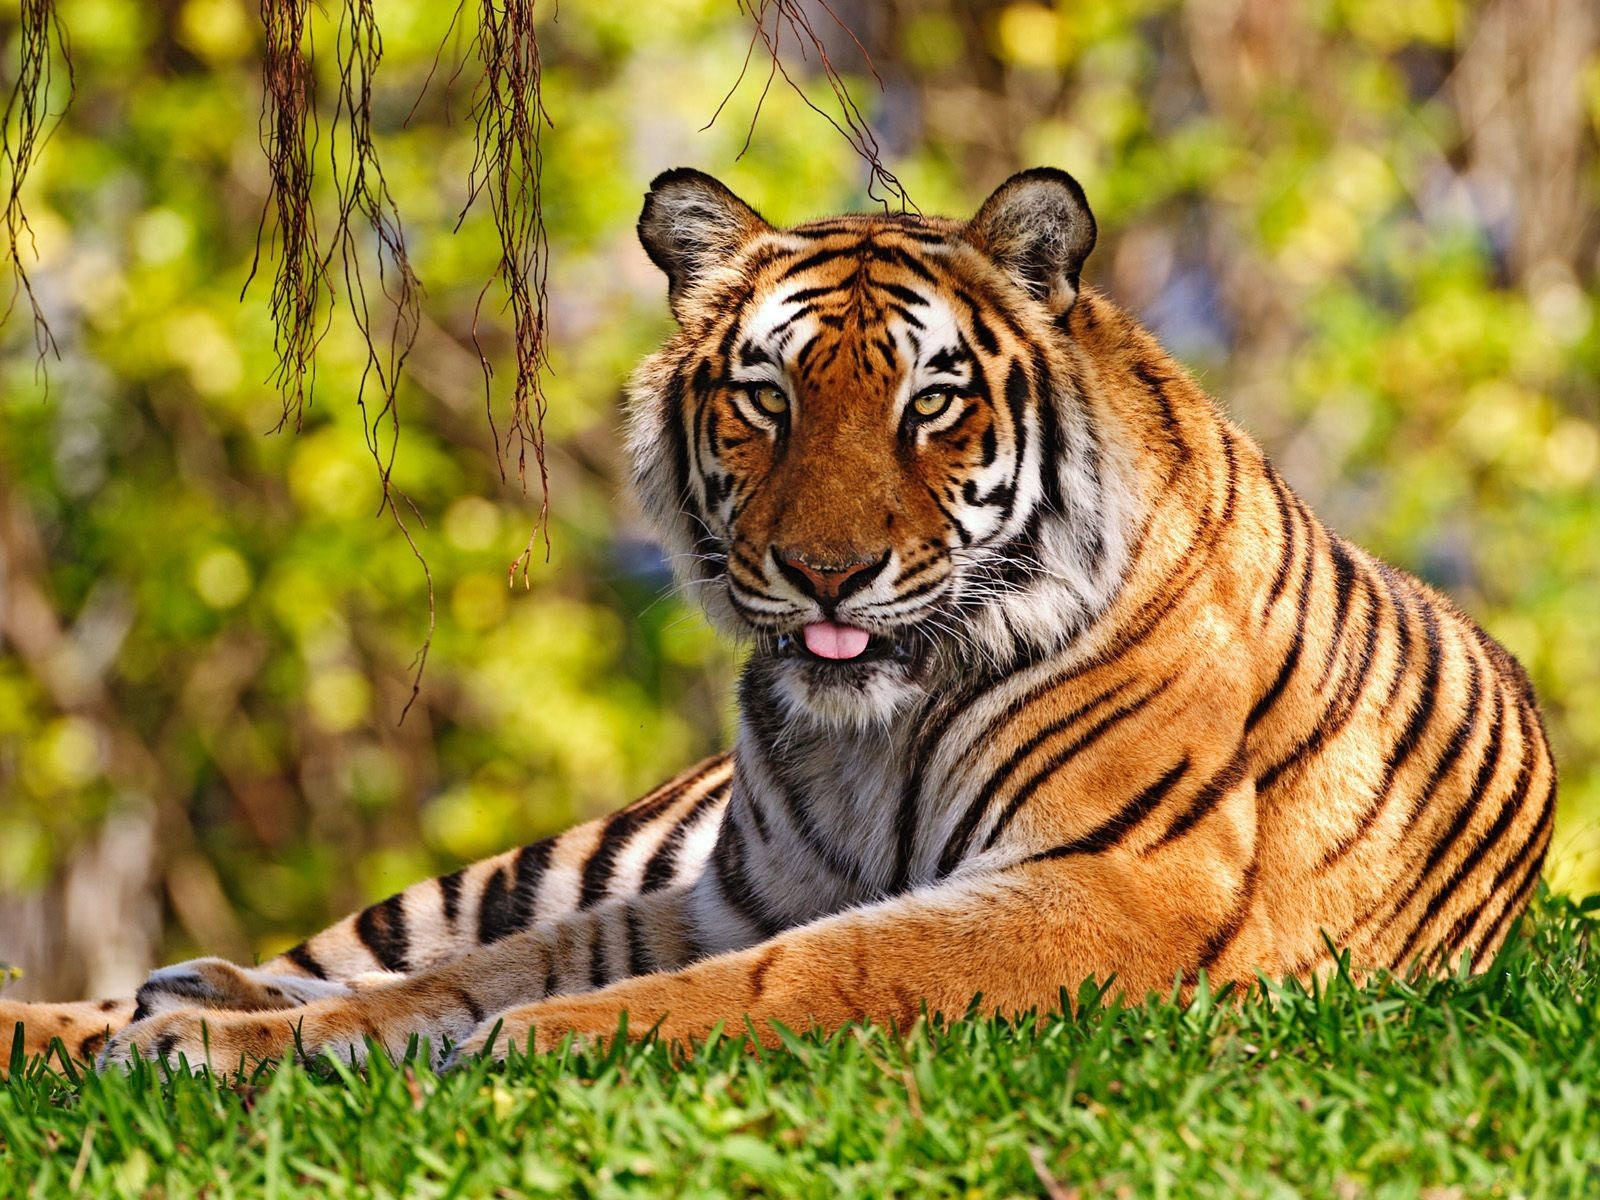 Tiger relaxing on the grass in the jungle.